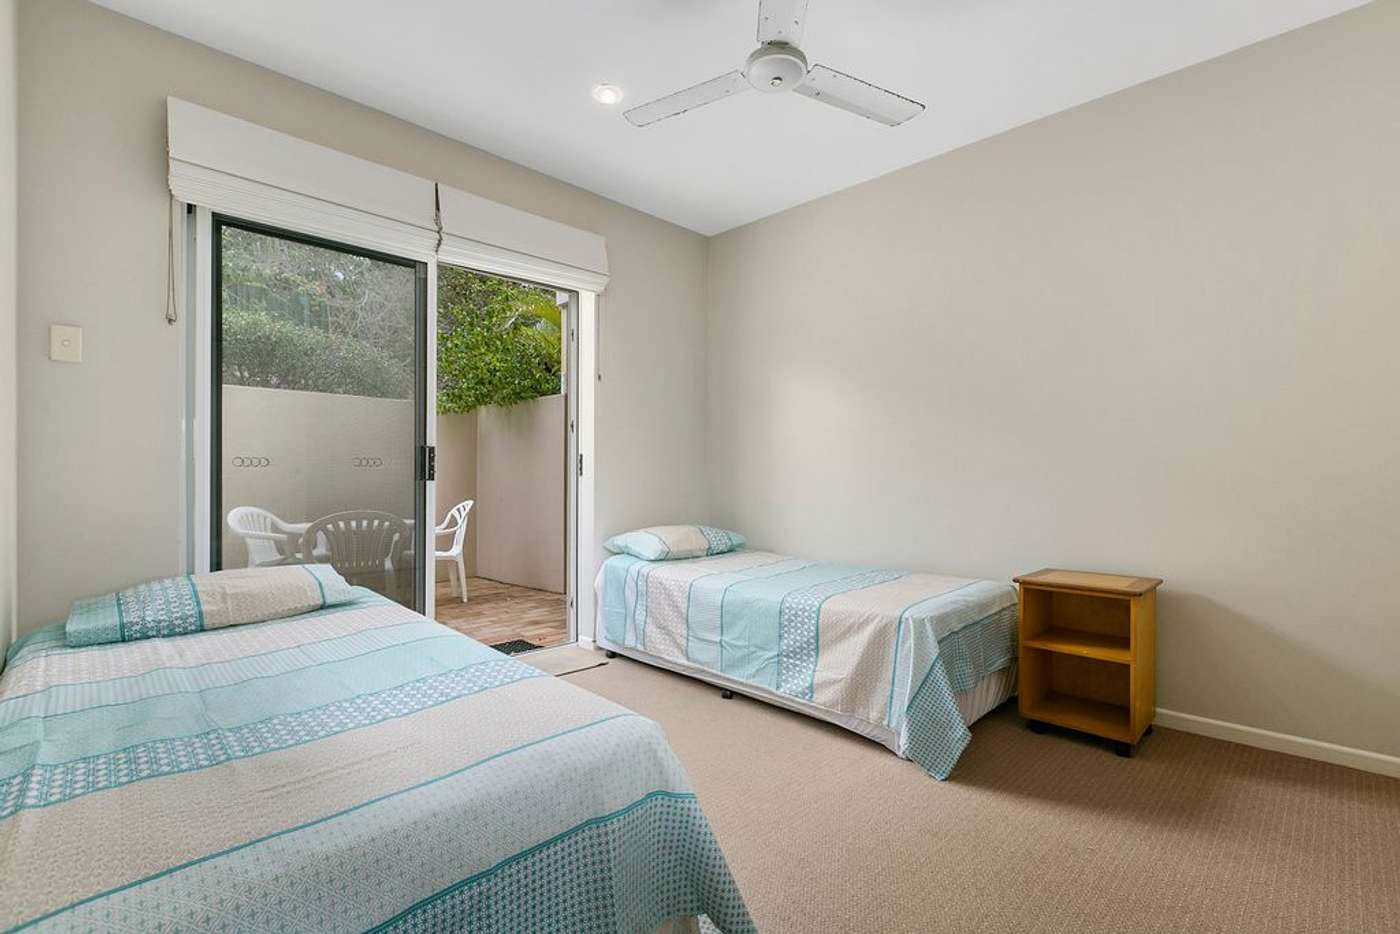 Sixth view of Homely unit listing, 8/1 Selene Street, Sunrise Beach QLD 4567